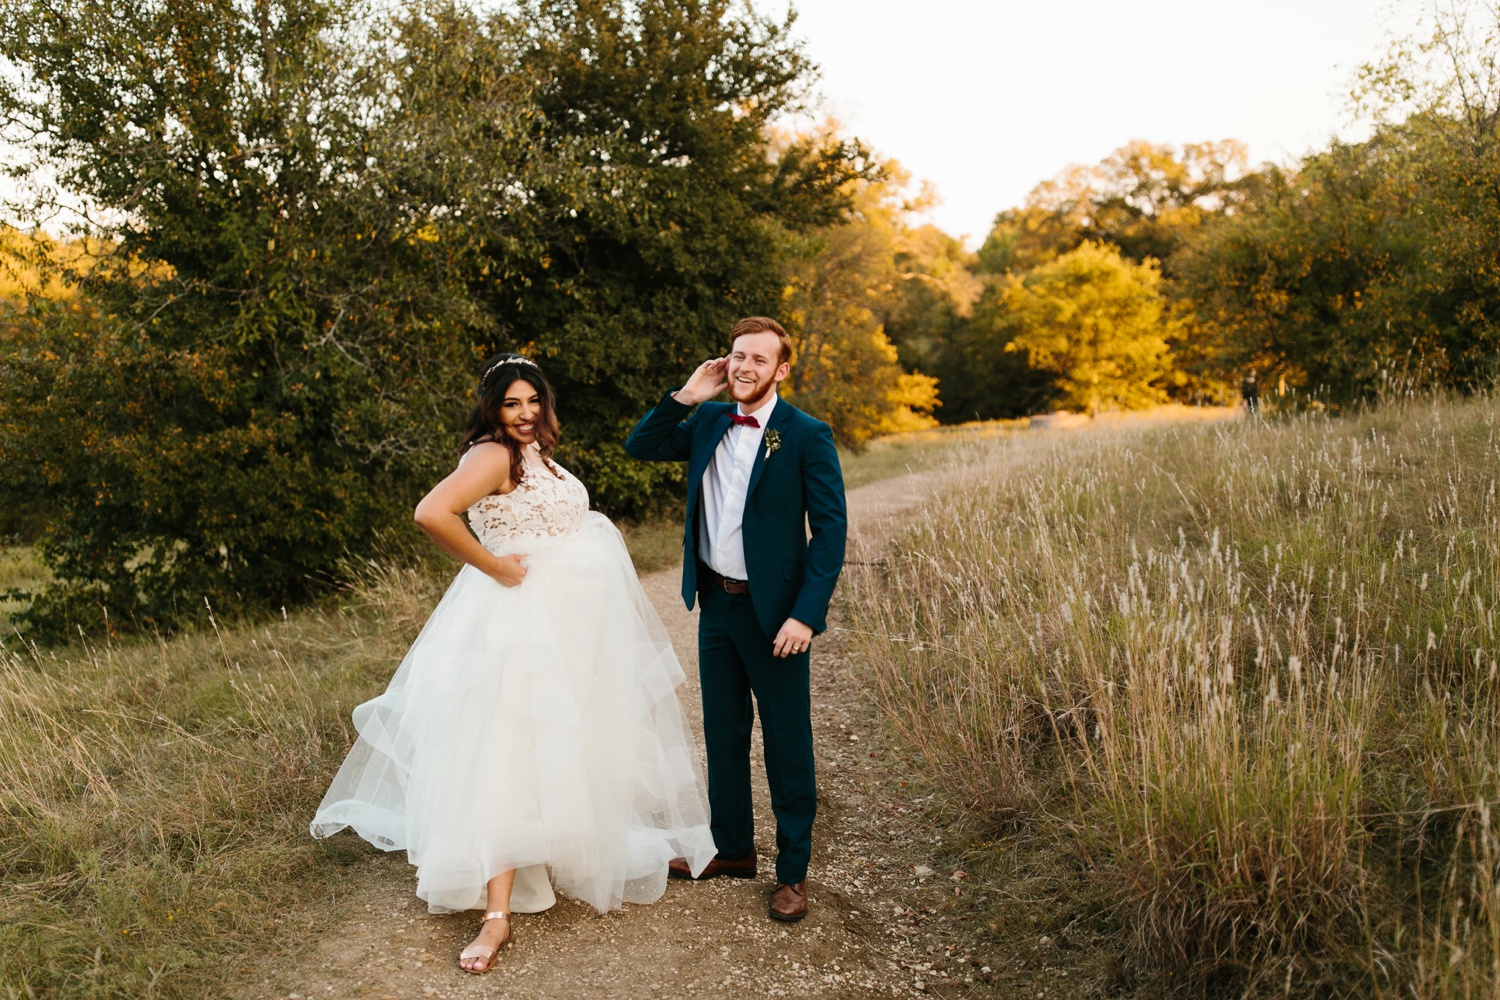 Grant + Lysette | a vibrant, deep burgundy and navy, and mixed metals wedding at Hidden Pines Chapel by North Texas Wedding Photographer Rachel Meagan Photography 248